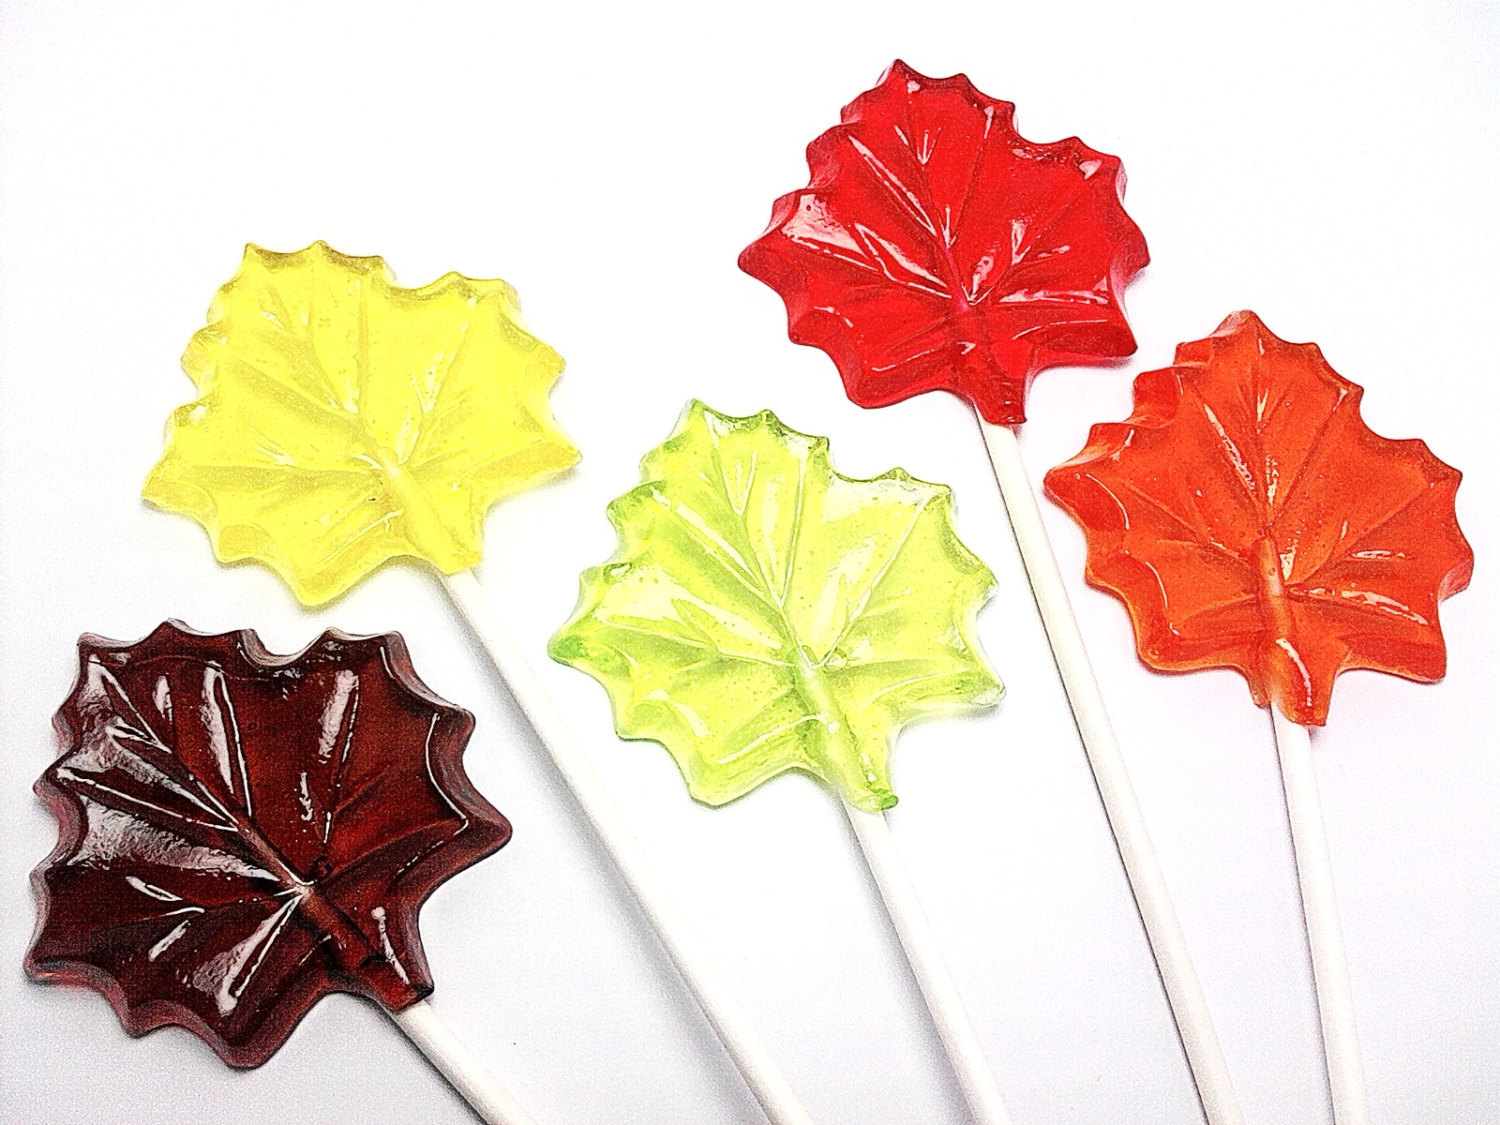 Primary image for 100 MAPLE LEAF LOLLIPOPS - Fall Party Favors, Select up to 3 colors and 3 flavor